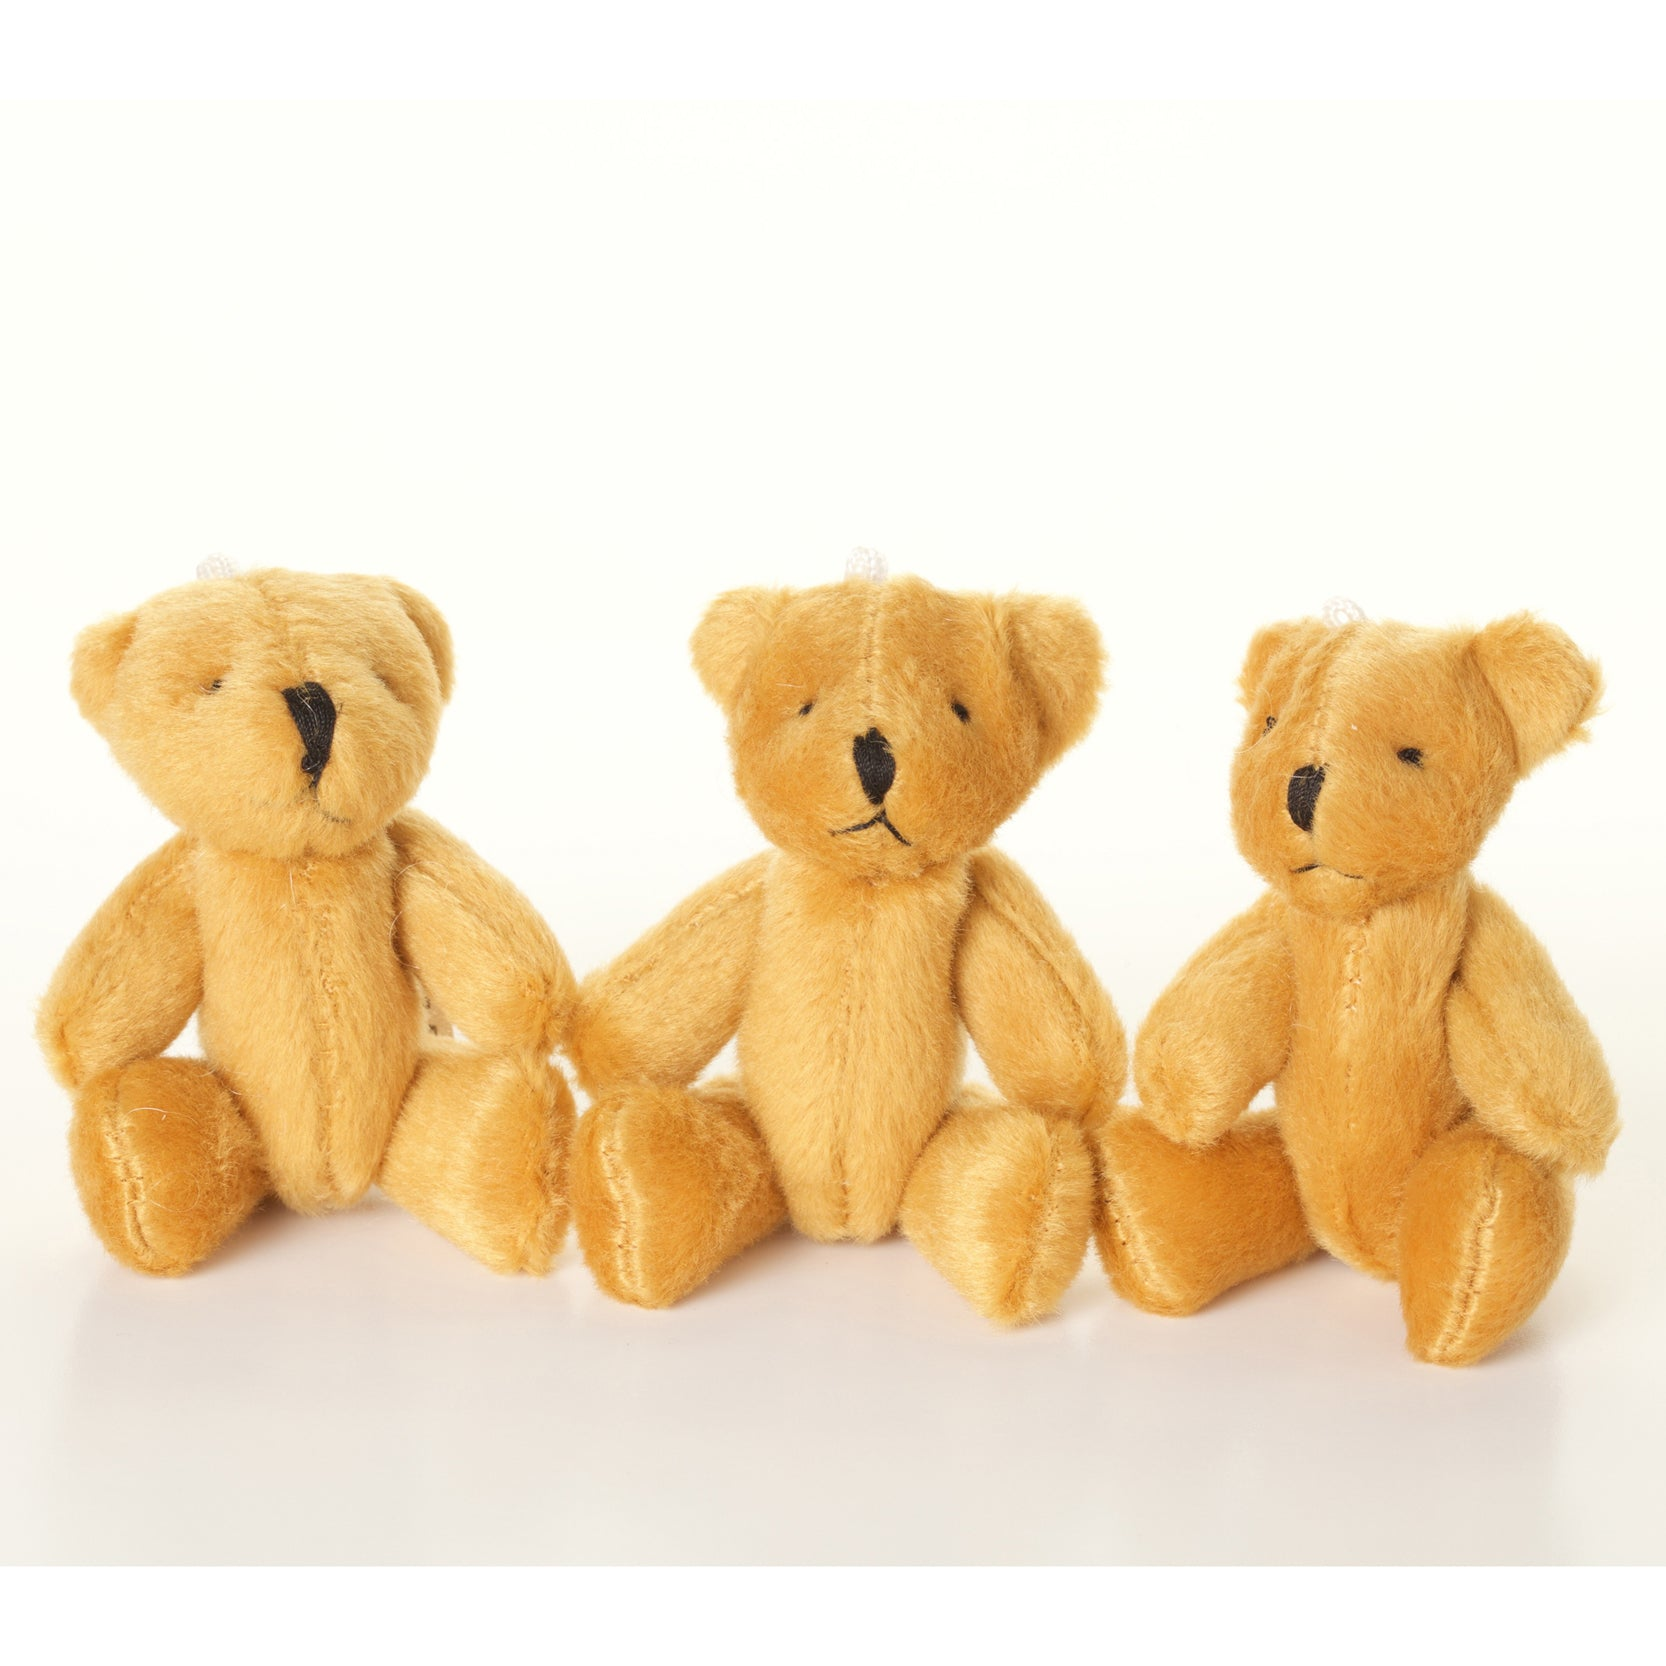 Small BROWN Teddy Bears X 80 - Cute Soft Adorable